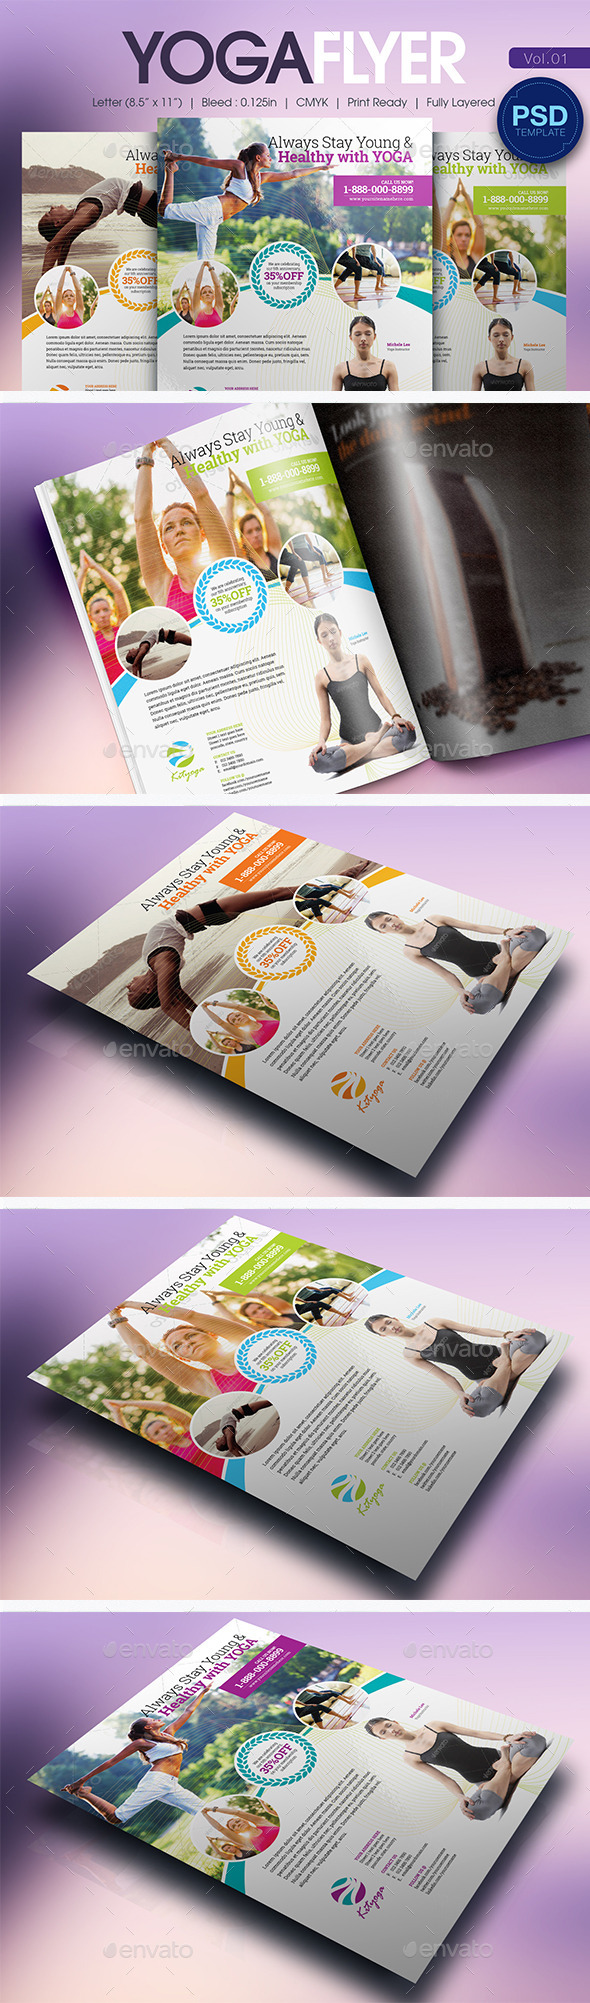 GraphicRiver Simple Yoga Flyer Vol.01 10793882